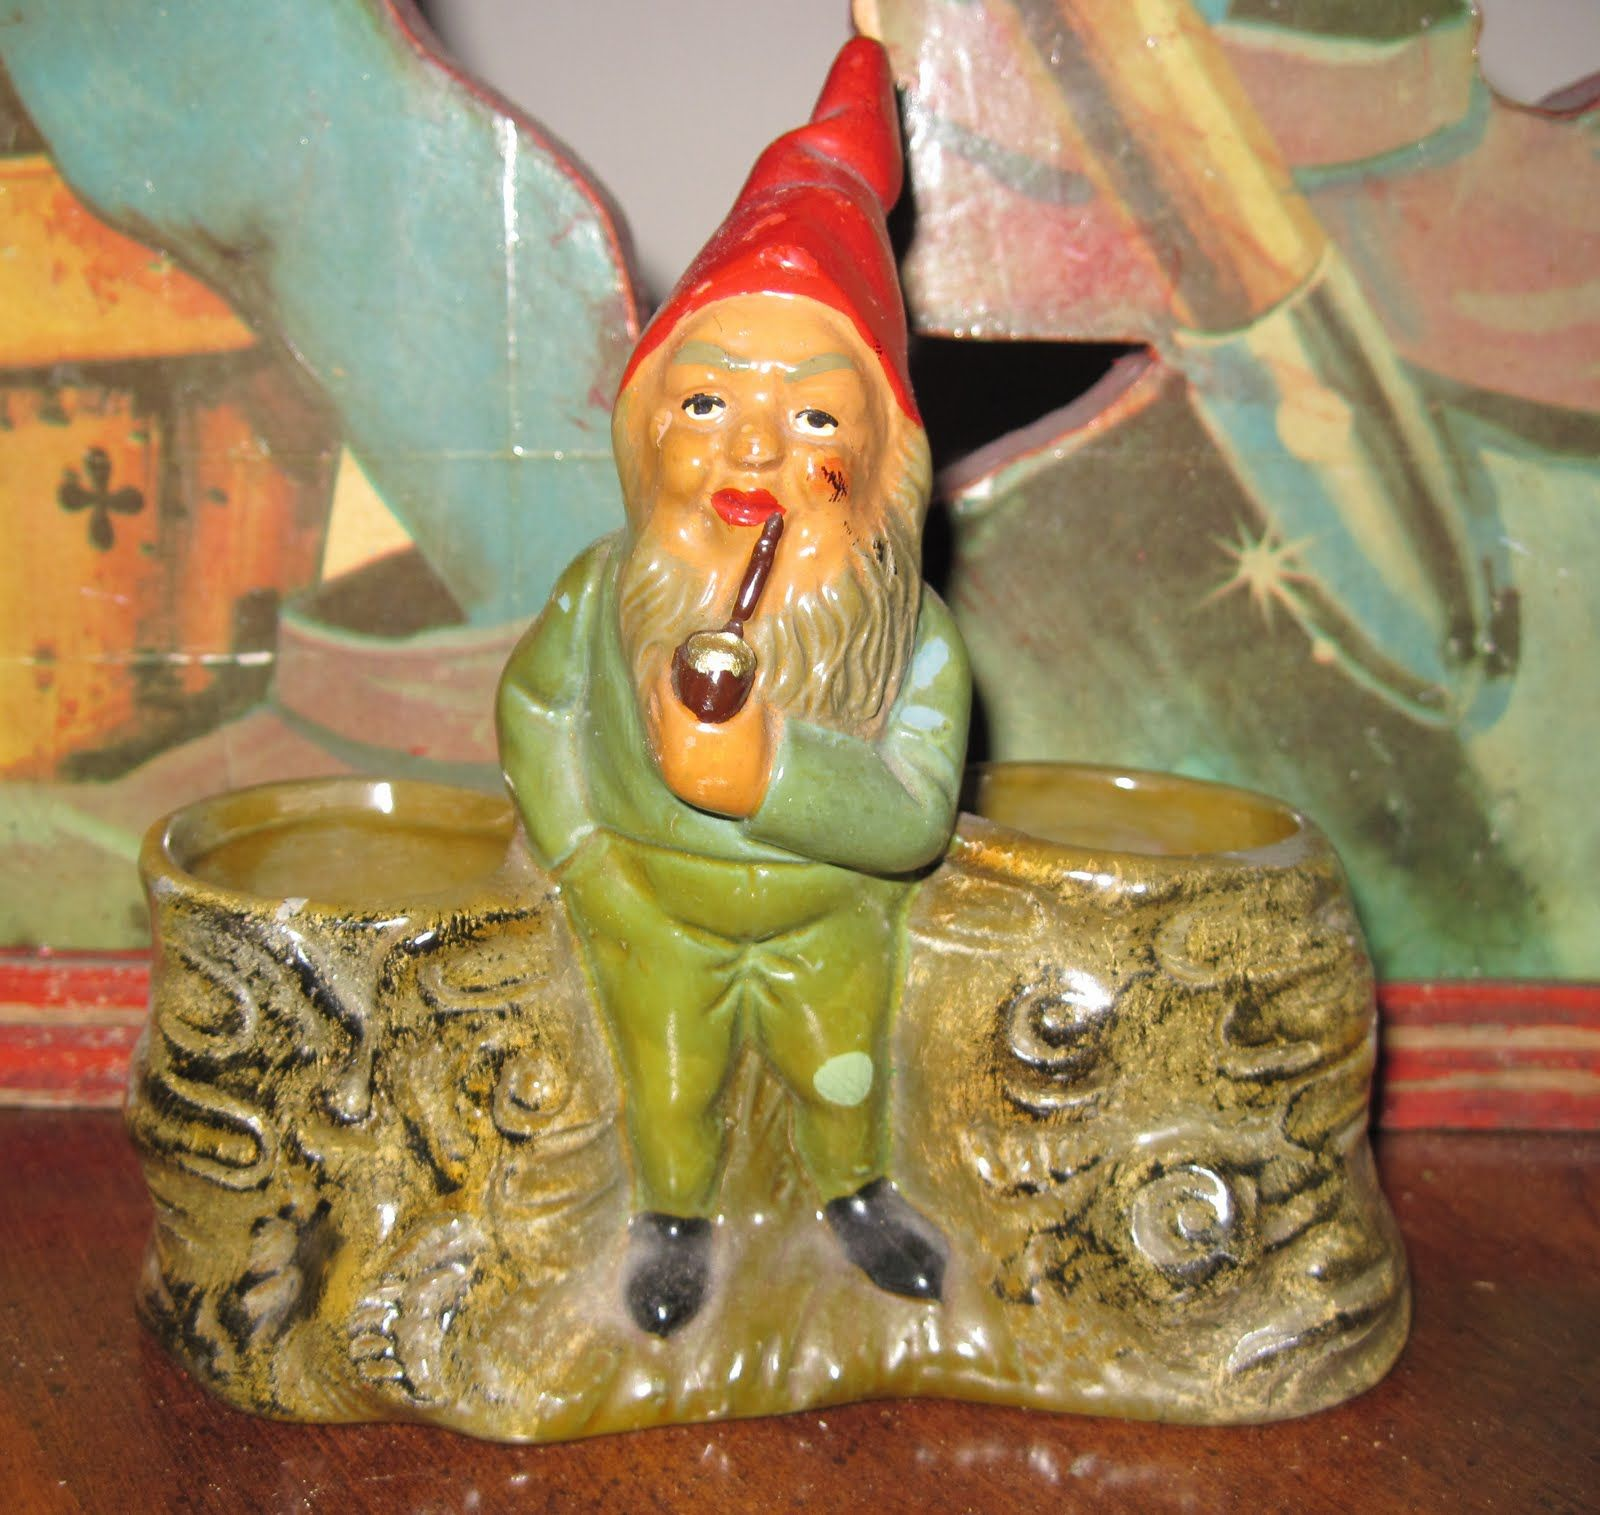 Tracy S Toys And Some Other Stuff Vintage German Gnome Thingy Funny Garden Gnomes Gnomes Gnome Garden